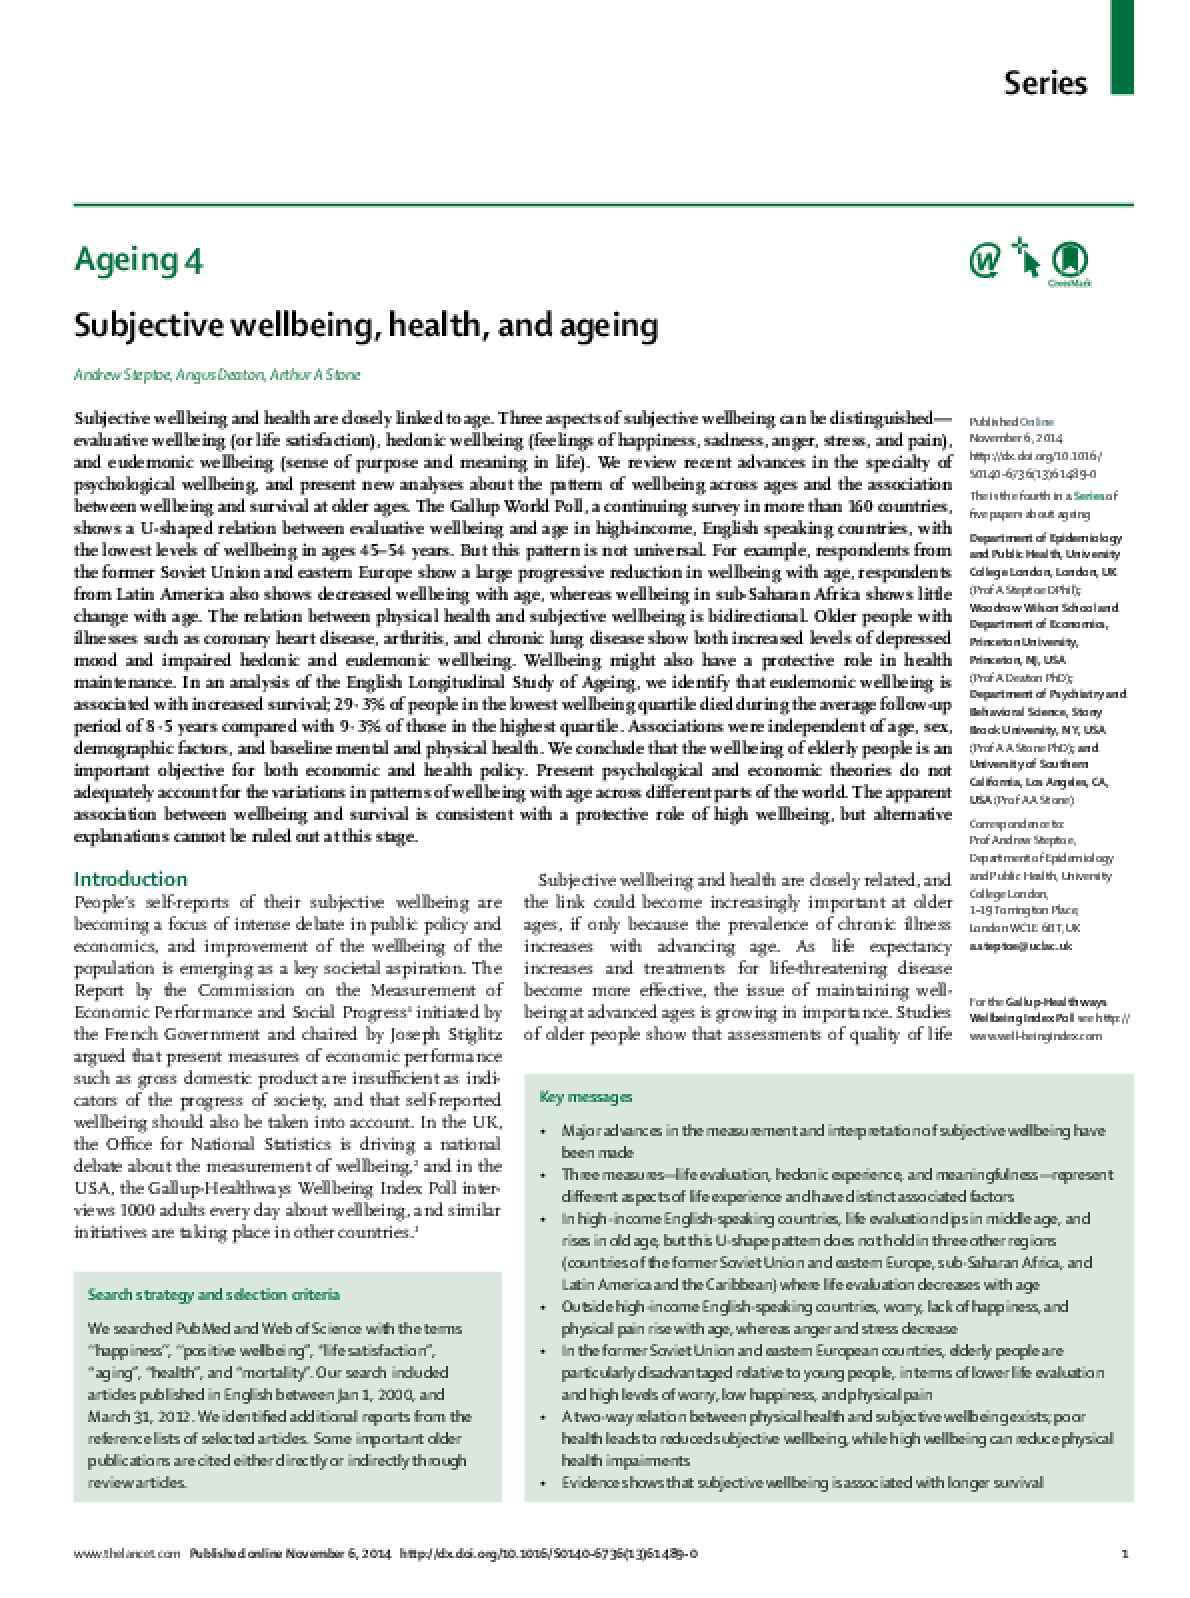 Subjective Wellbeing, Health and Ageing